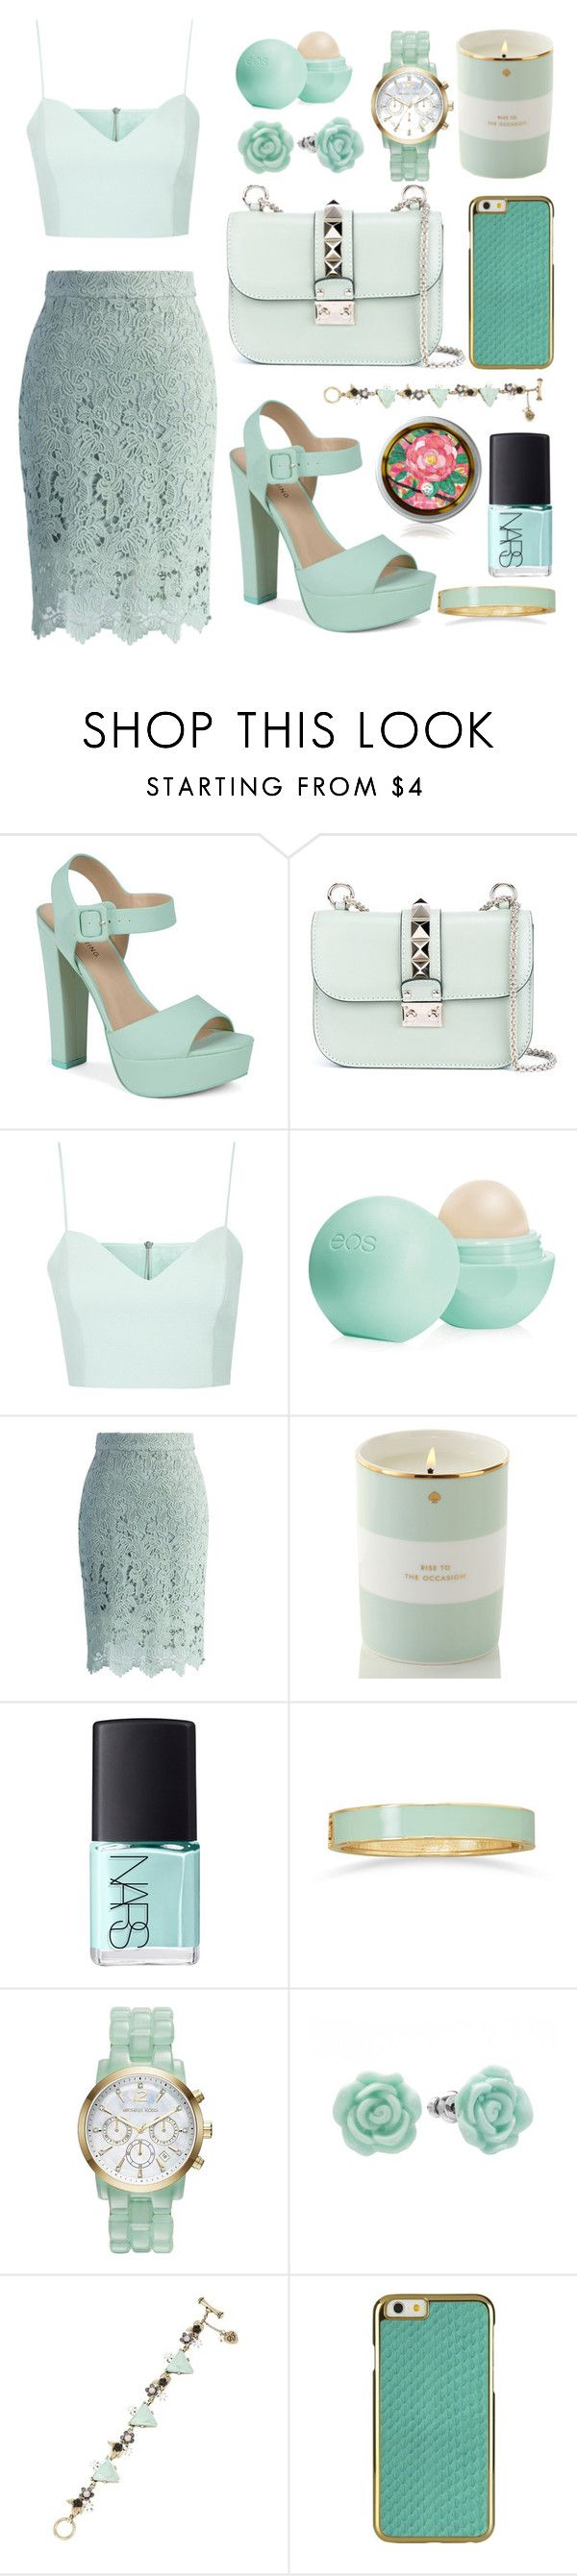 """""""Mint Dream"""" by francesca-stansfield ❤ liked on Polyvore featuring Call it SPRING, Valentino, Topshop, Eos, Chicwish, Kate Spade, NARS Cosmetics, BillyTheTree, Michael Kors and LC Lauren Conrad"""